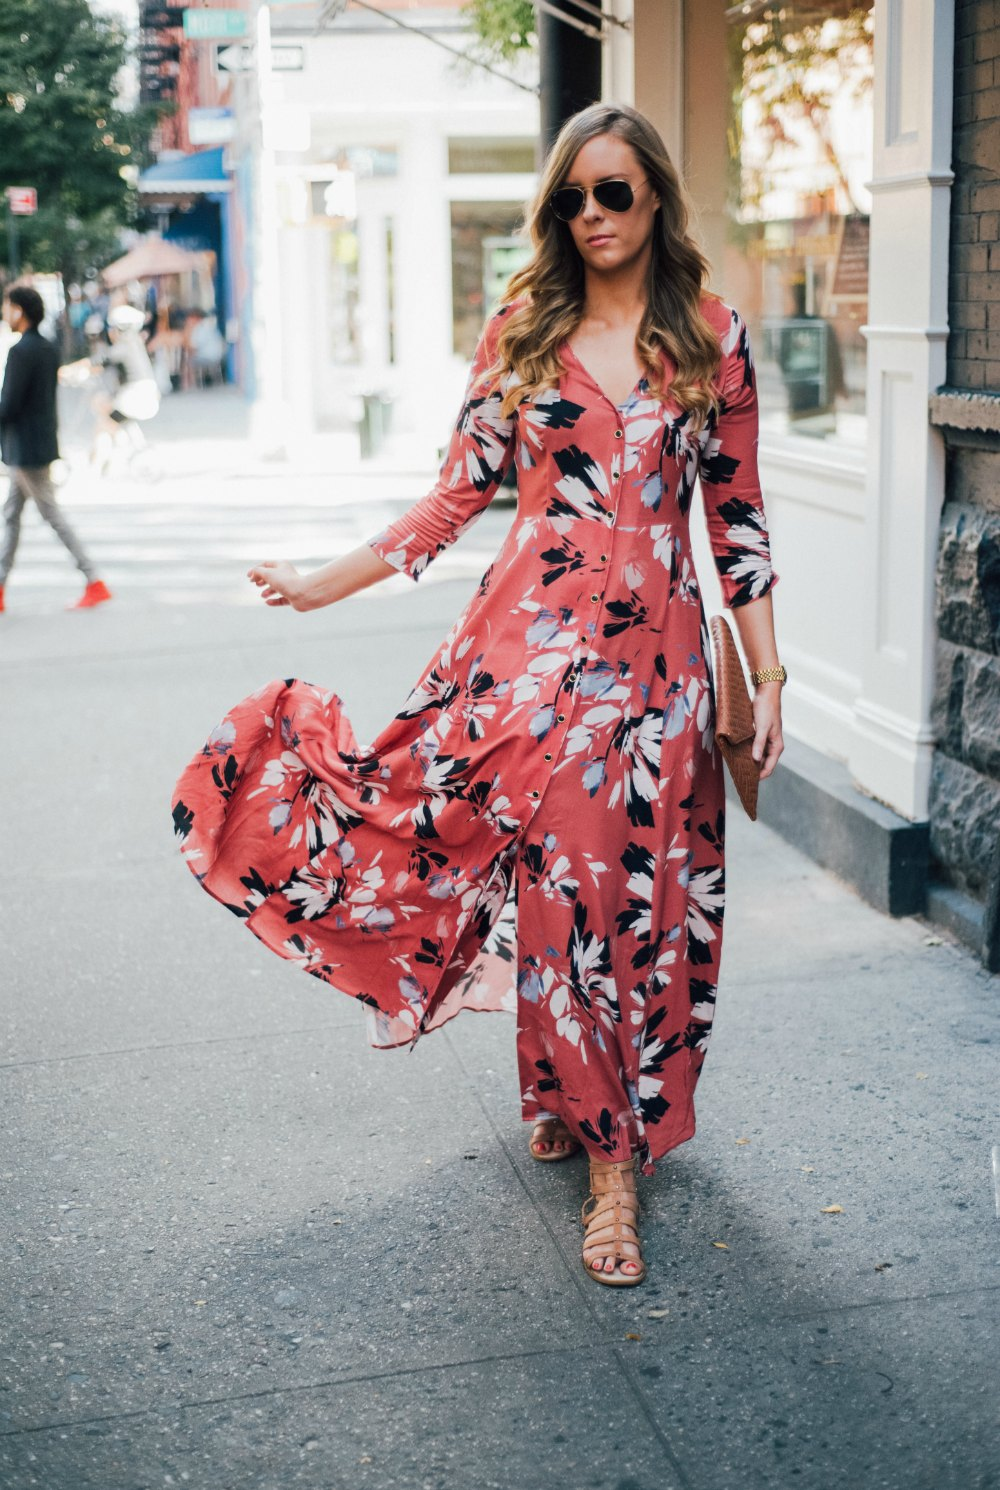 yumi kim maxi dress new york spring outfit soho lauren slade style elixir fashion blog 10